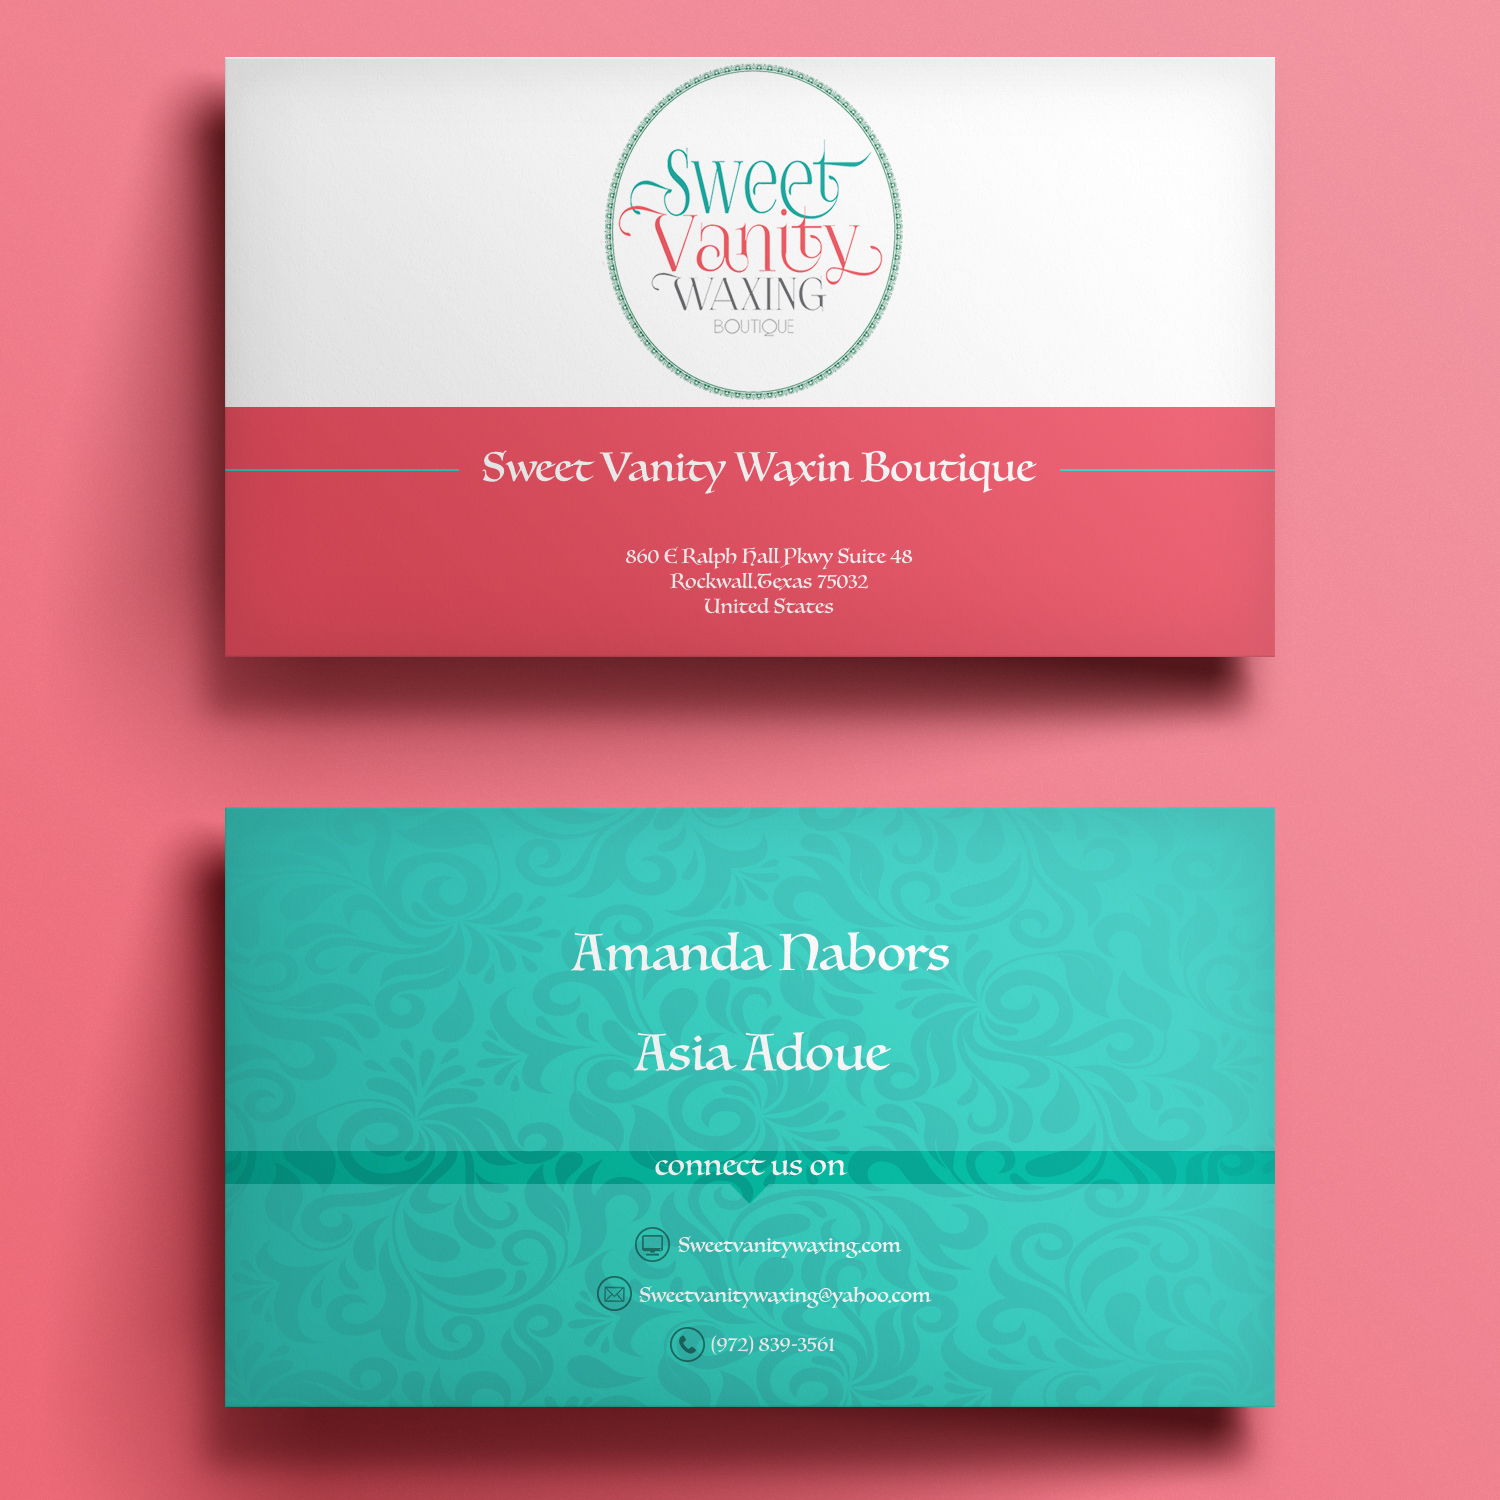 Elegant playful business card design for sweet vanity waxing business card design by mariami for business card design design 7065160 reheart Choice Image